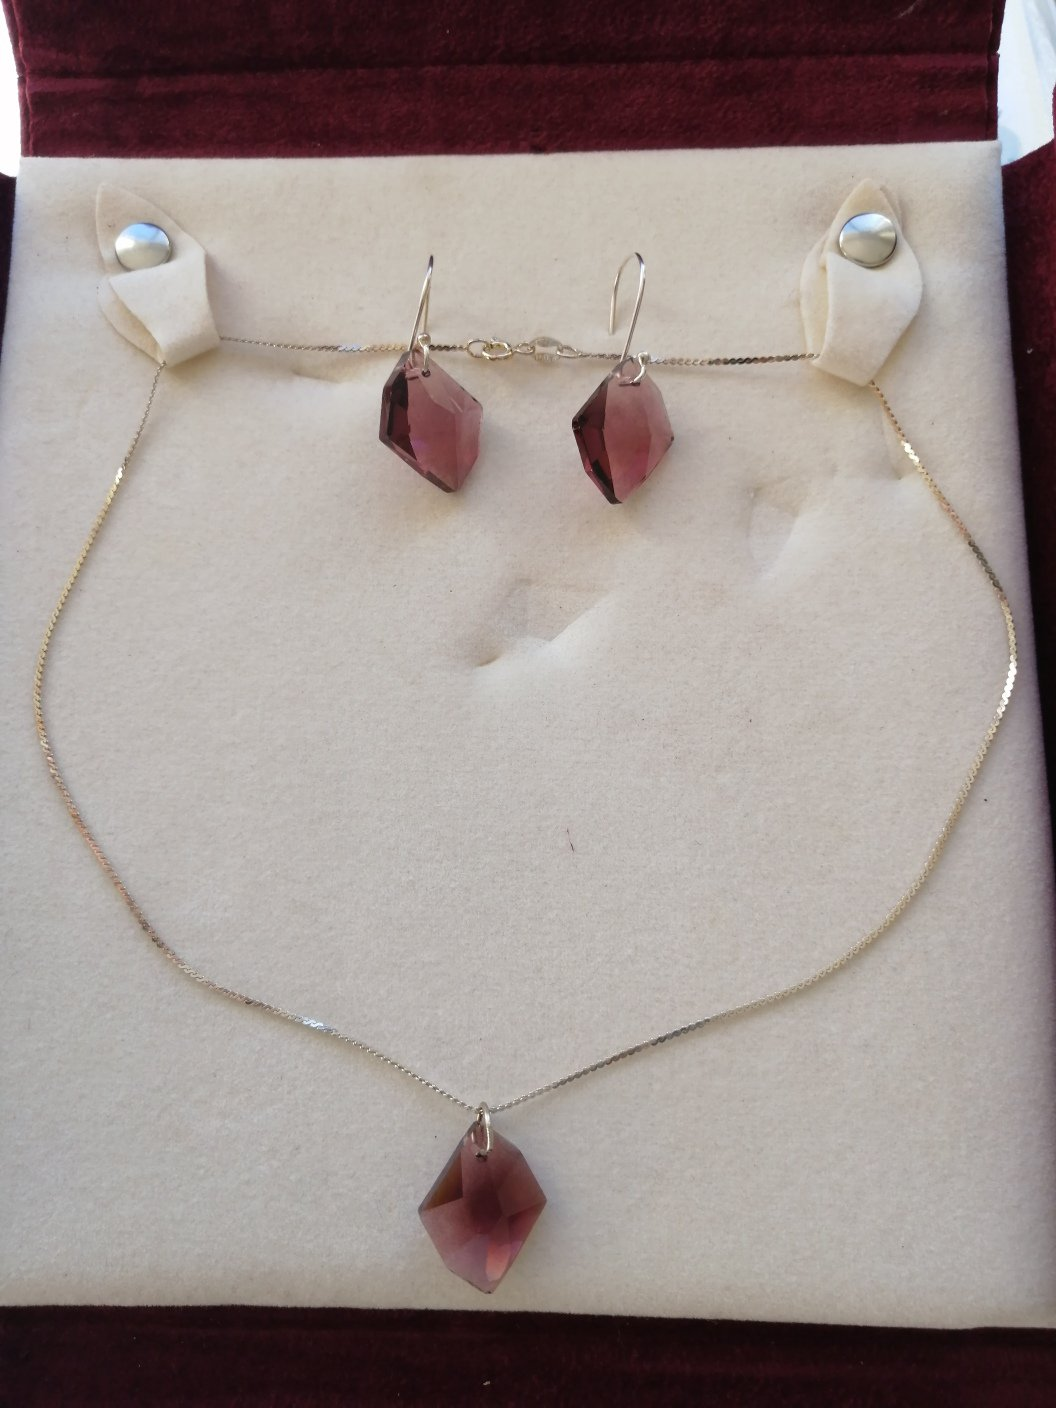 EARRINGS and NECKLACE set in Sterling SILVER 925 and violet purple Quartz Original in gift box